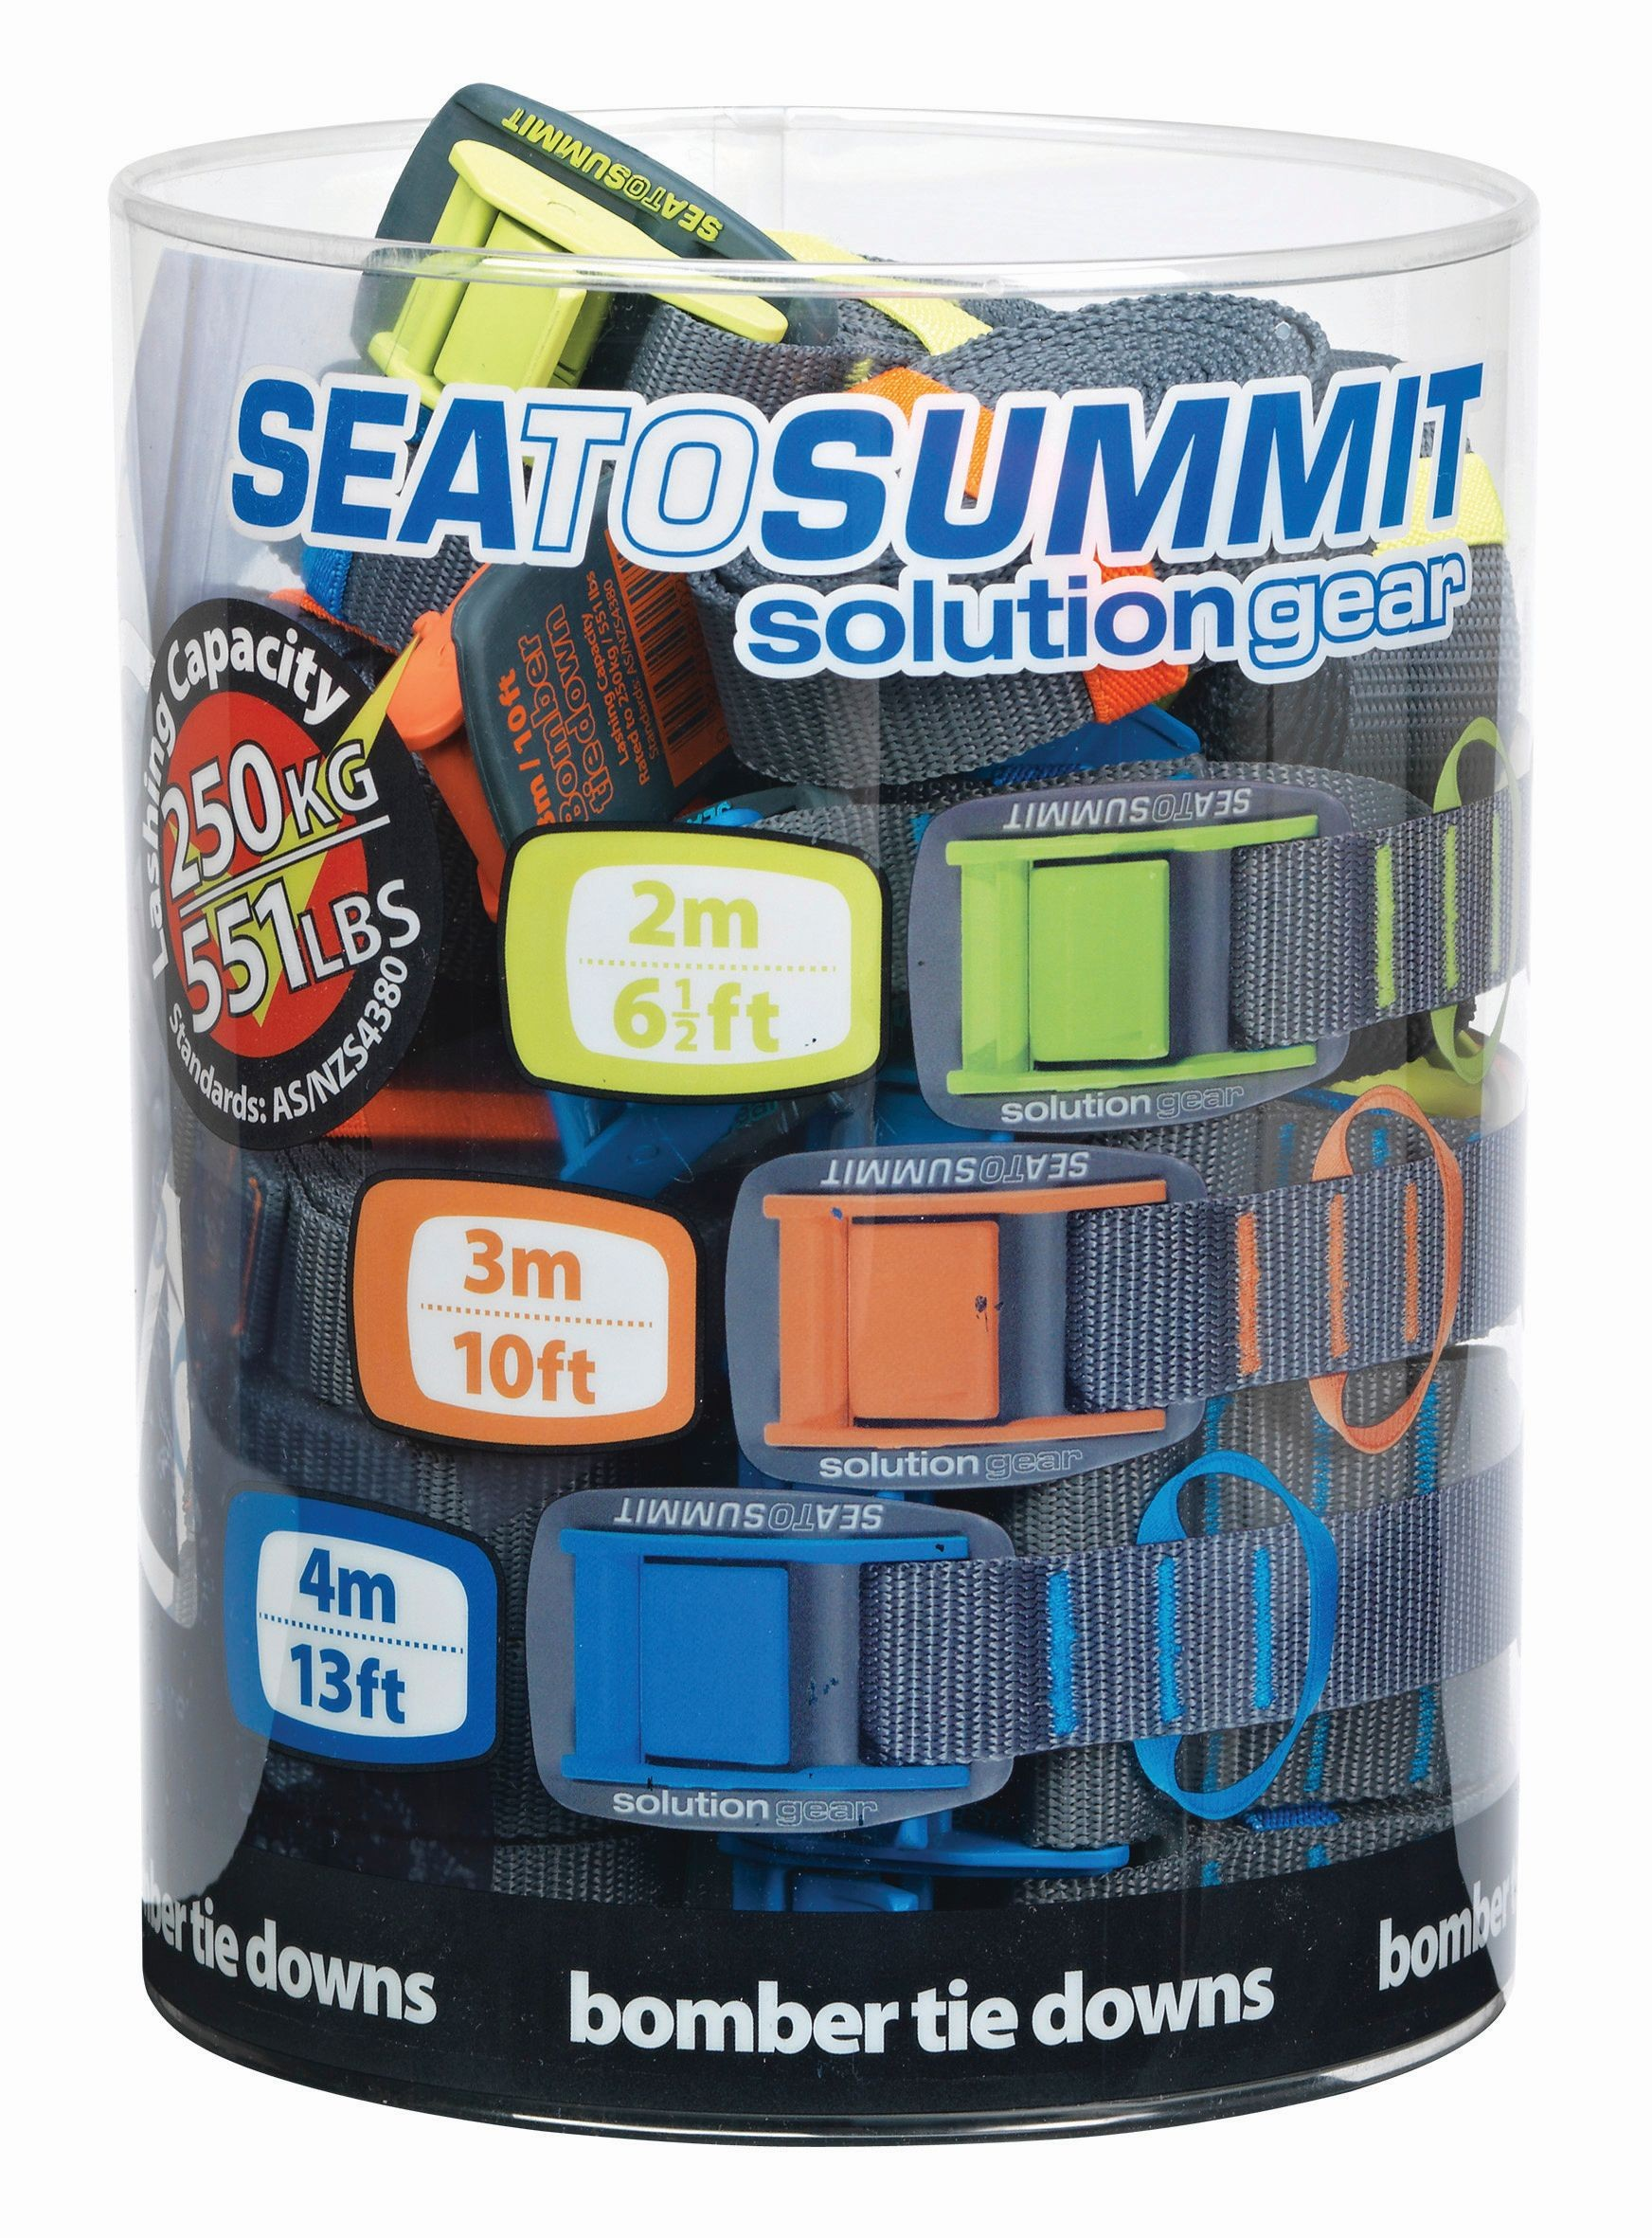 Sea To Summit Bomber Tie Down Retail Pack 6 units of each size